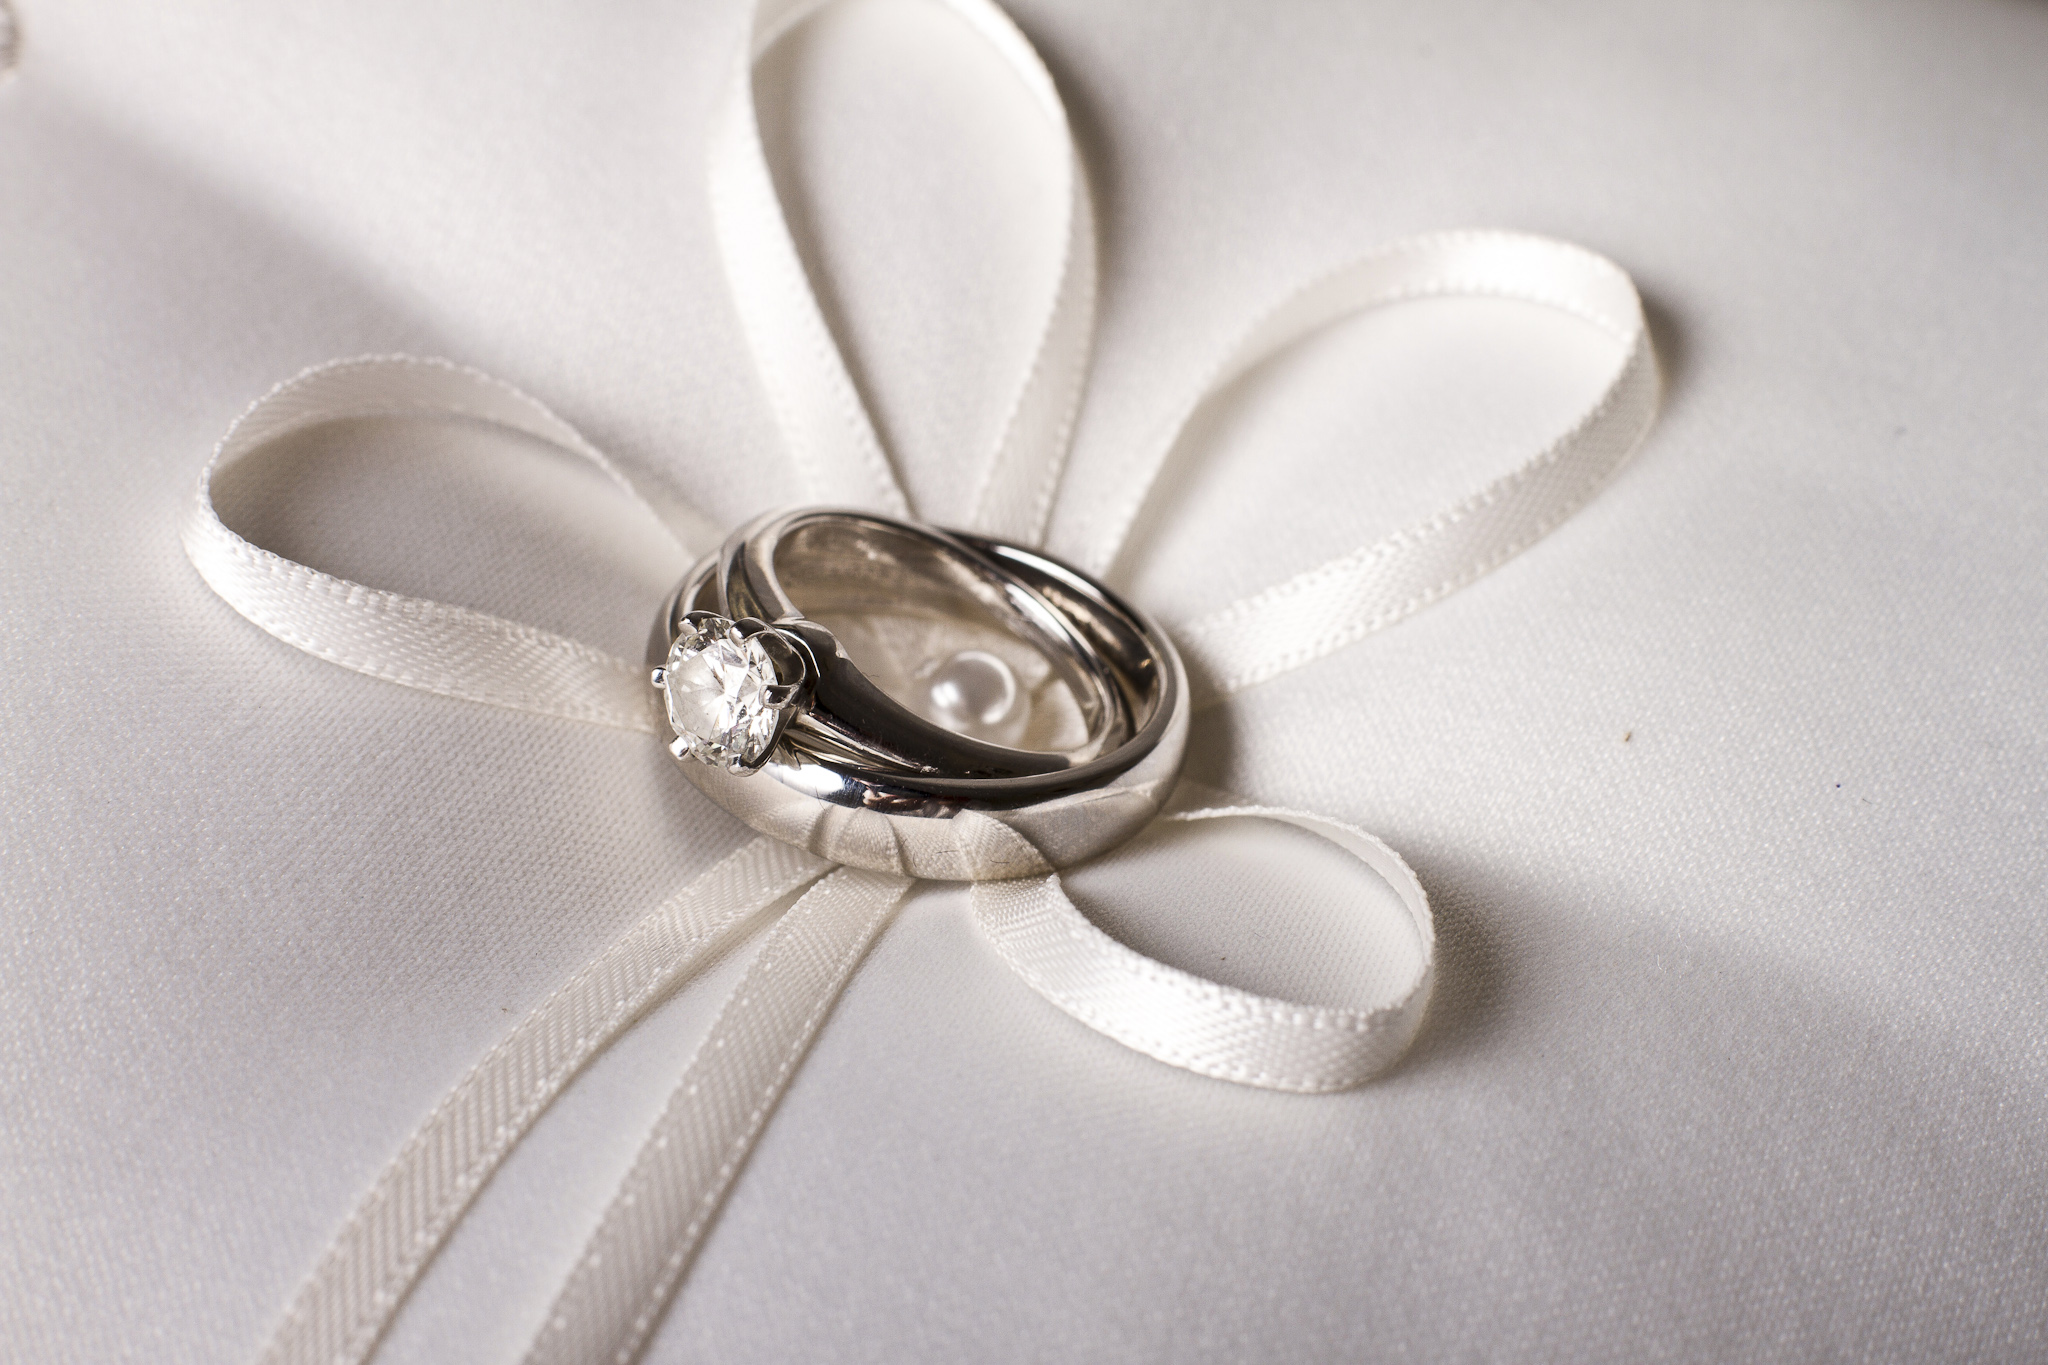 Pillow wedding rings